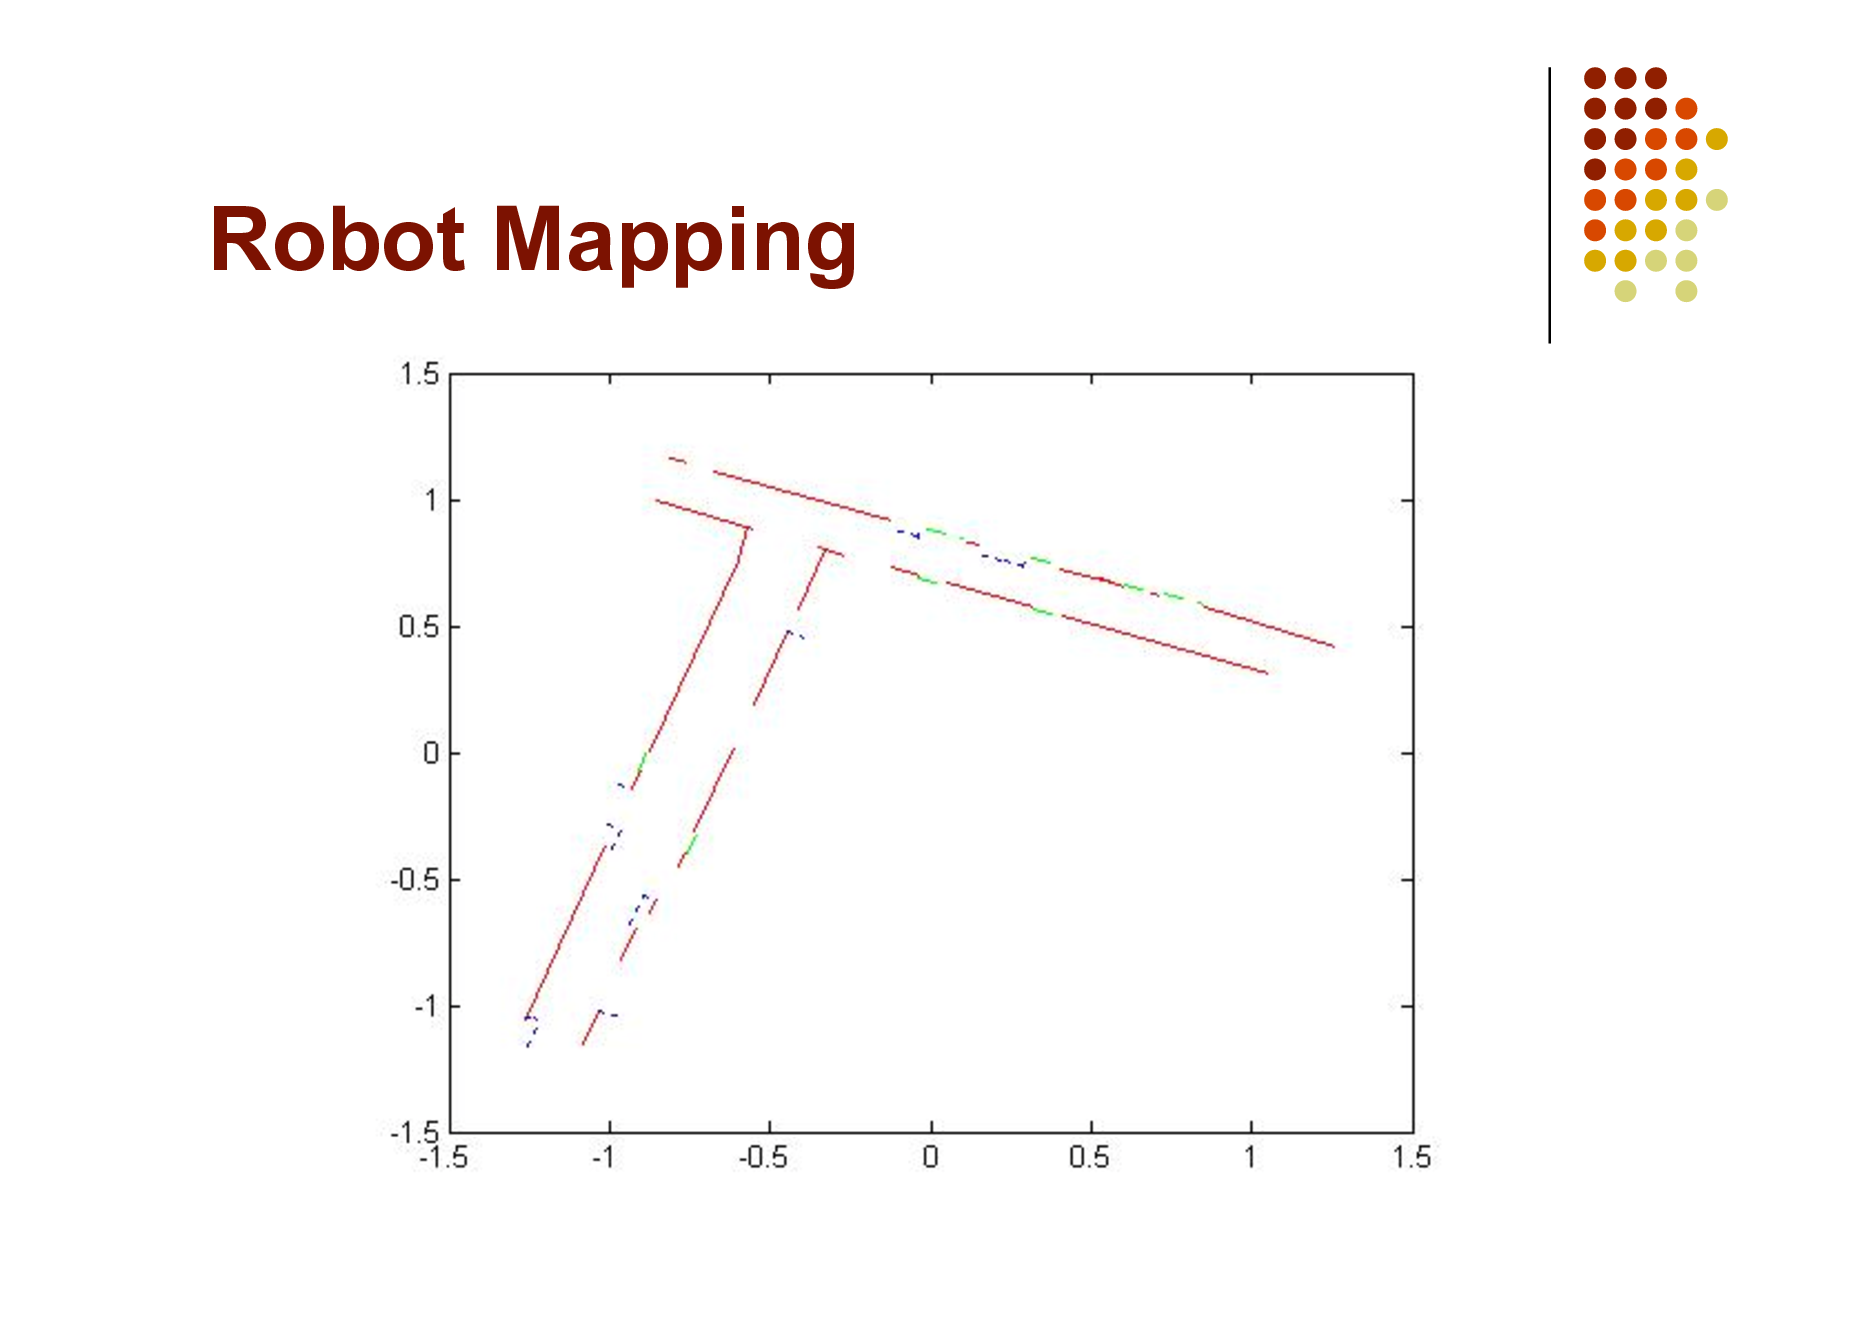 Slide: Robot Mapping